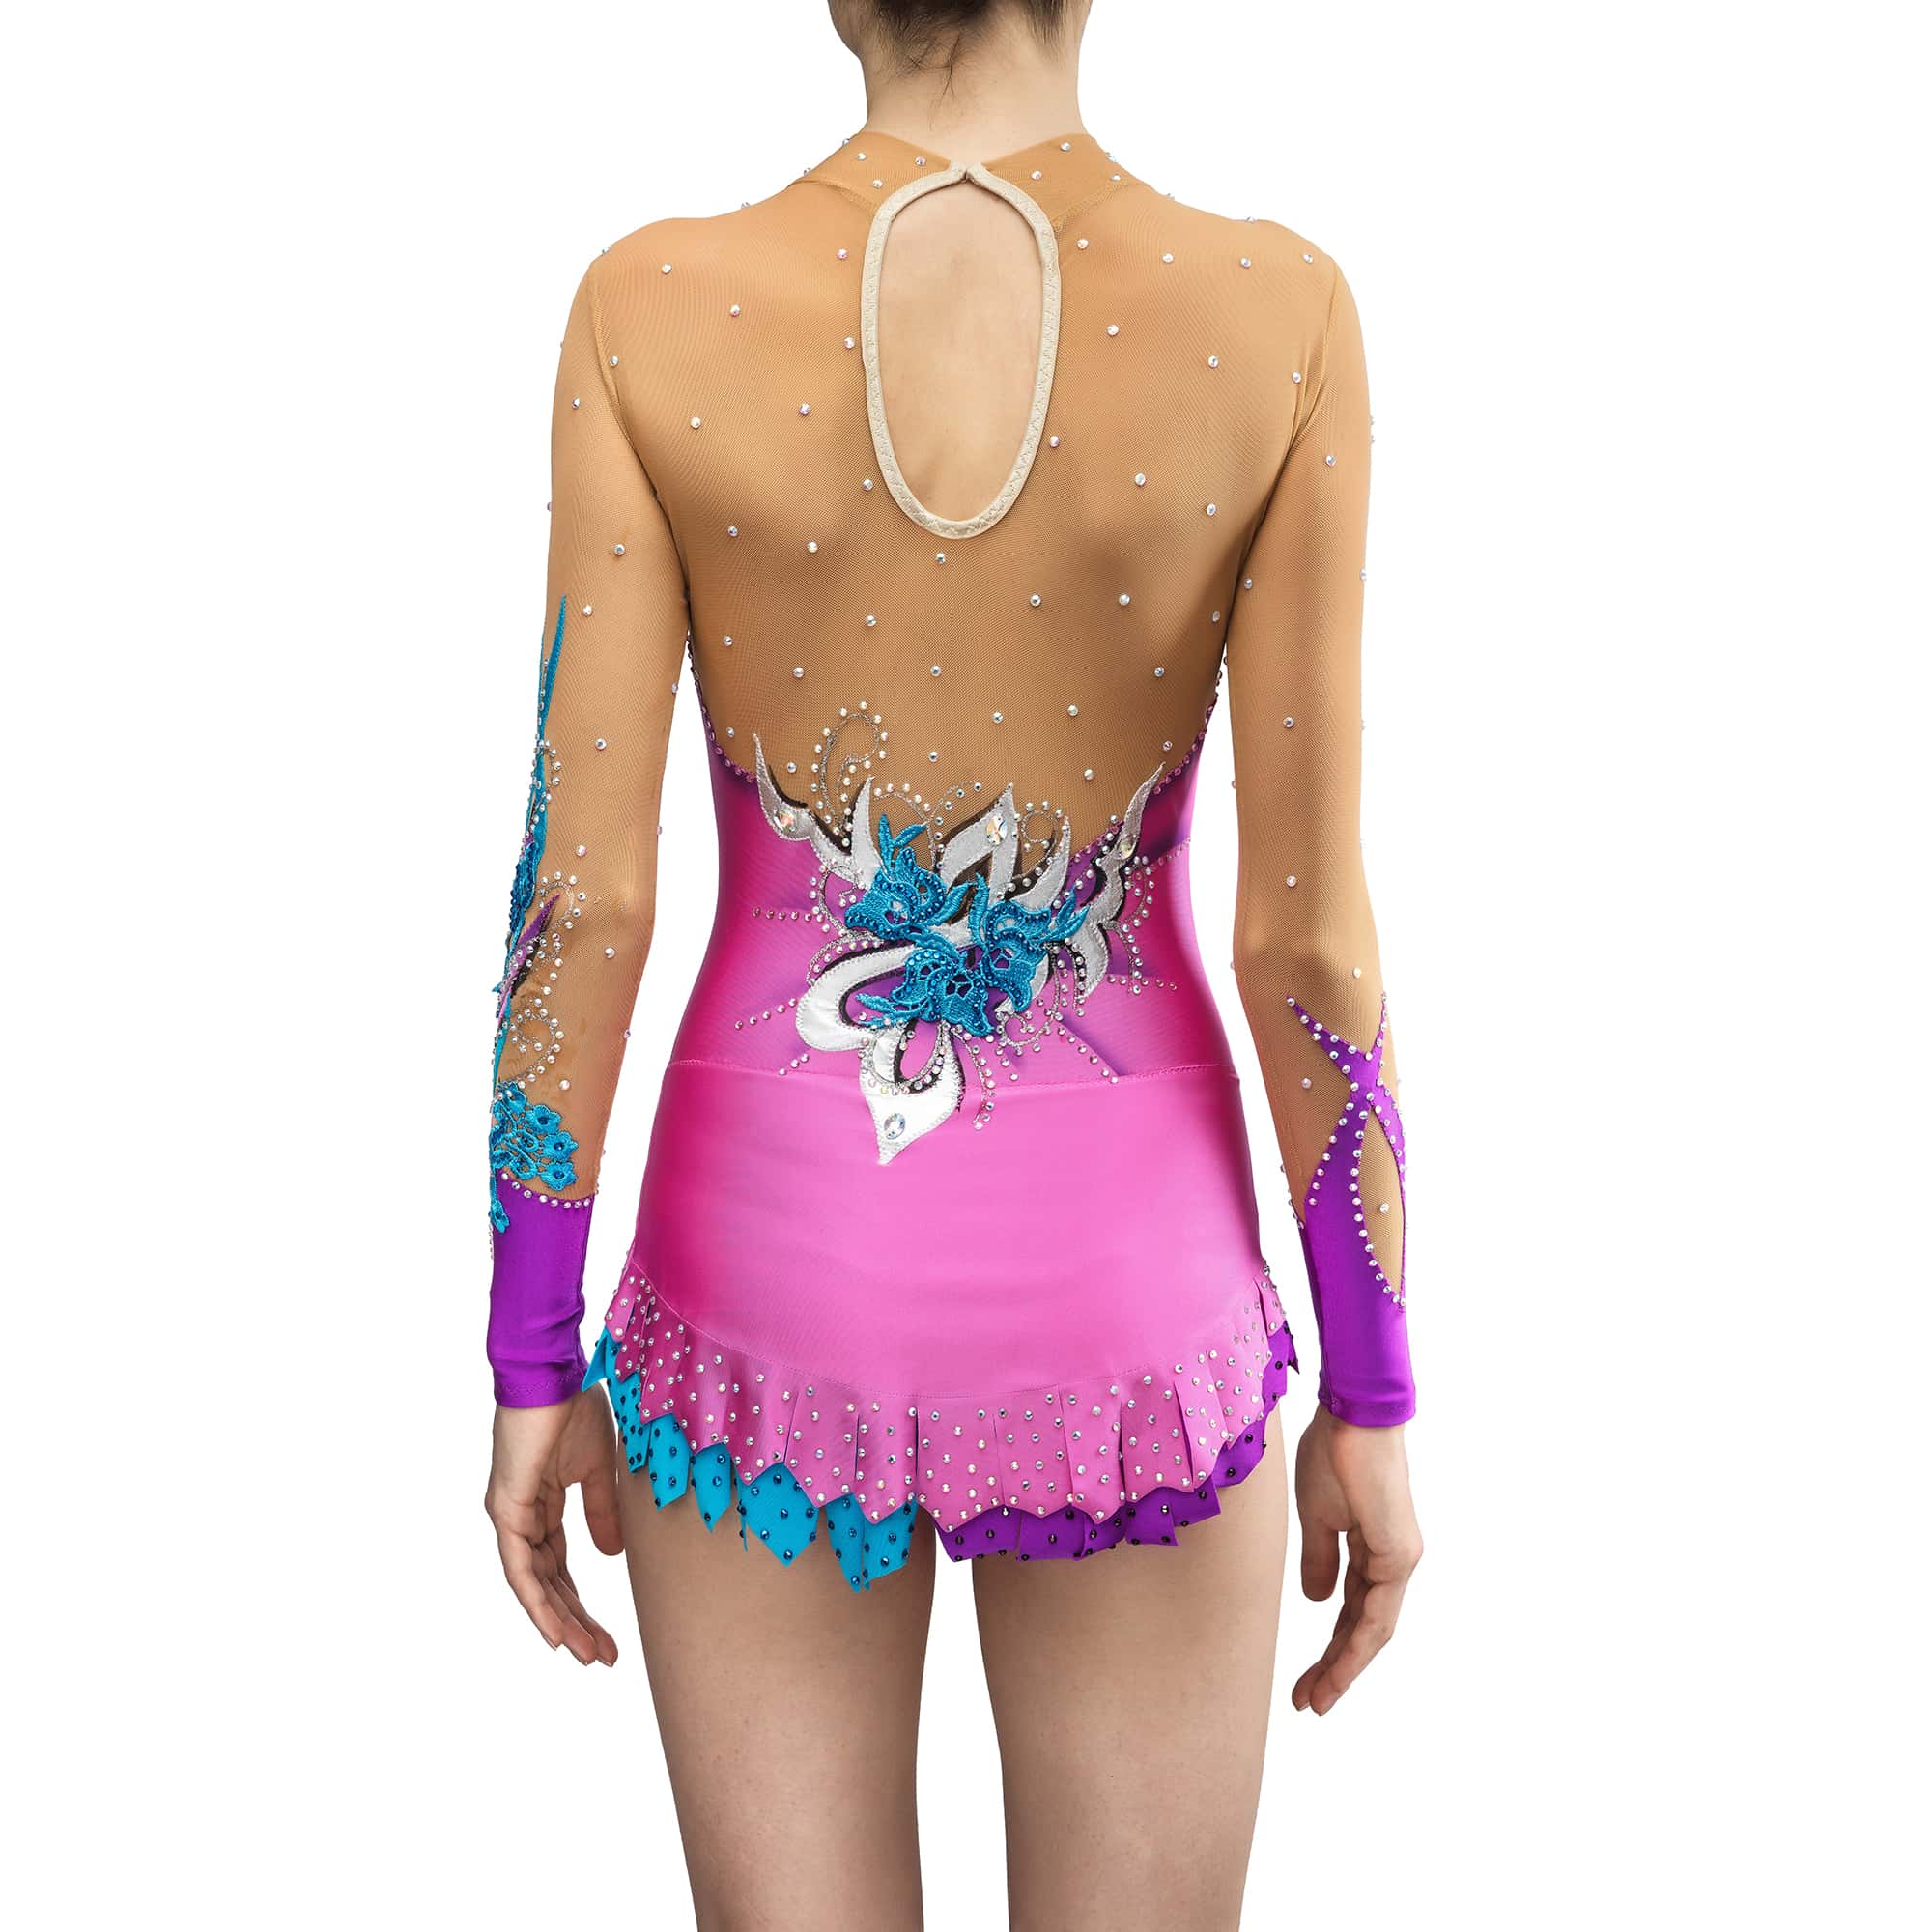 Back side view of the lilac, purple & blue gymnastics leotard № 192 for competitions with collar, two sleeves & 2 layered skirt